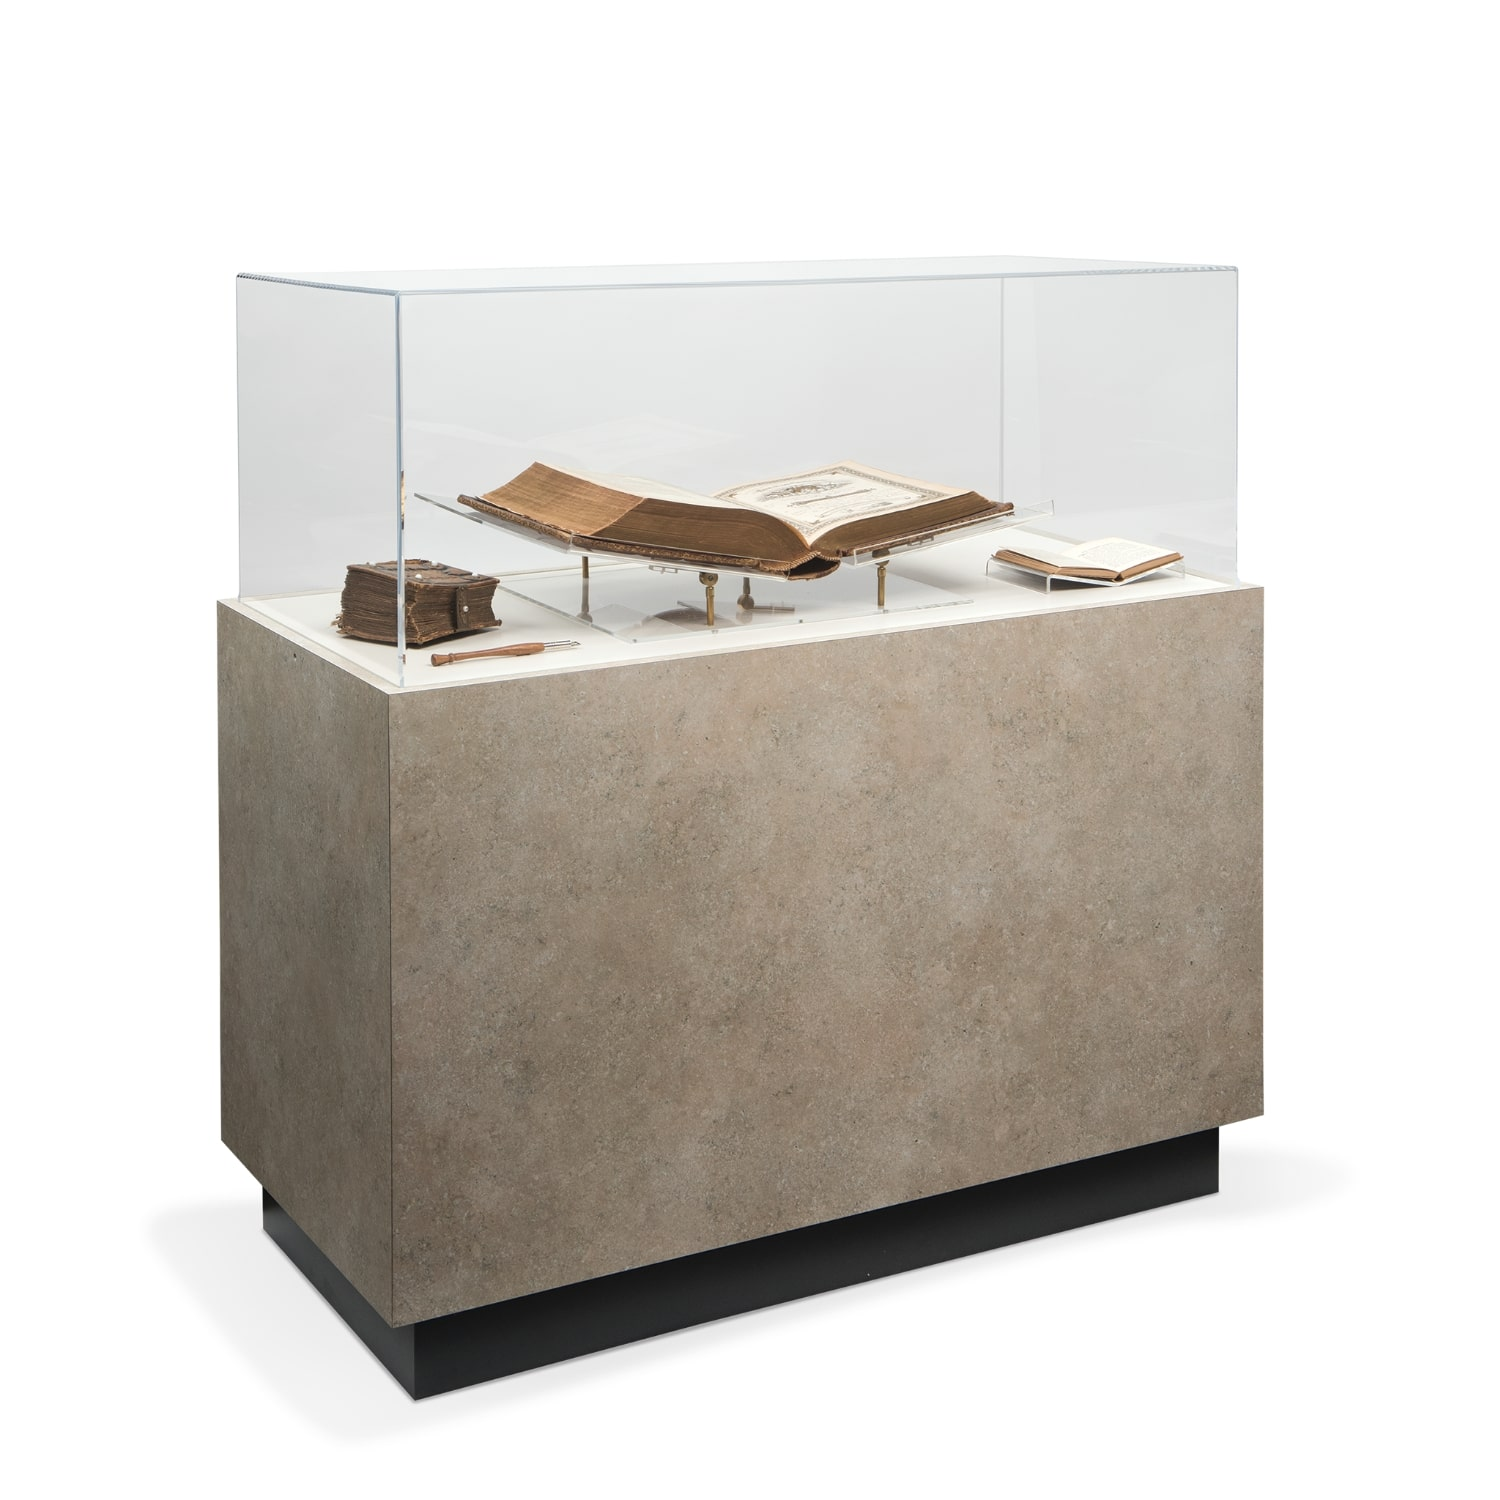 Pedestal Cases Archival & Library Solutions